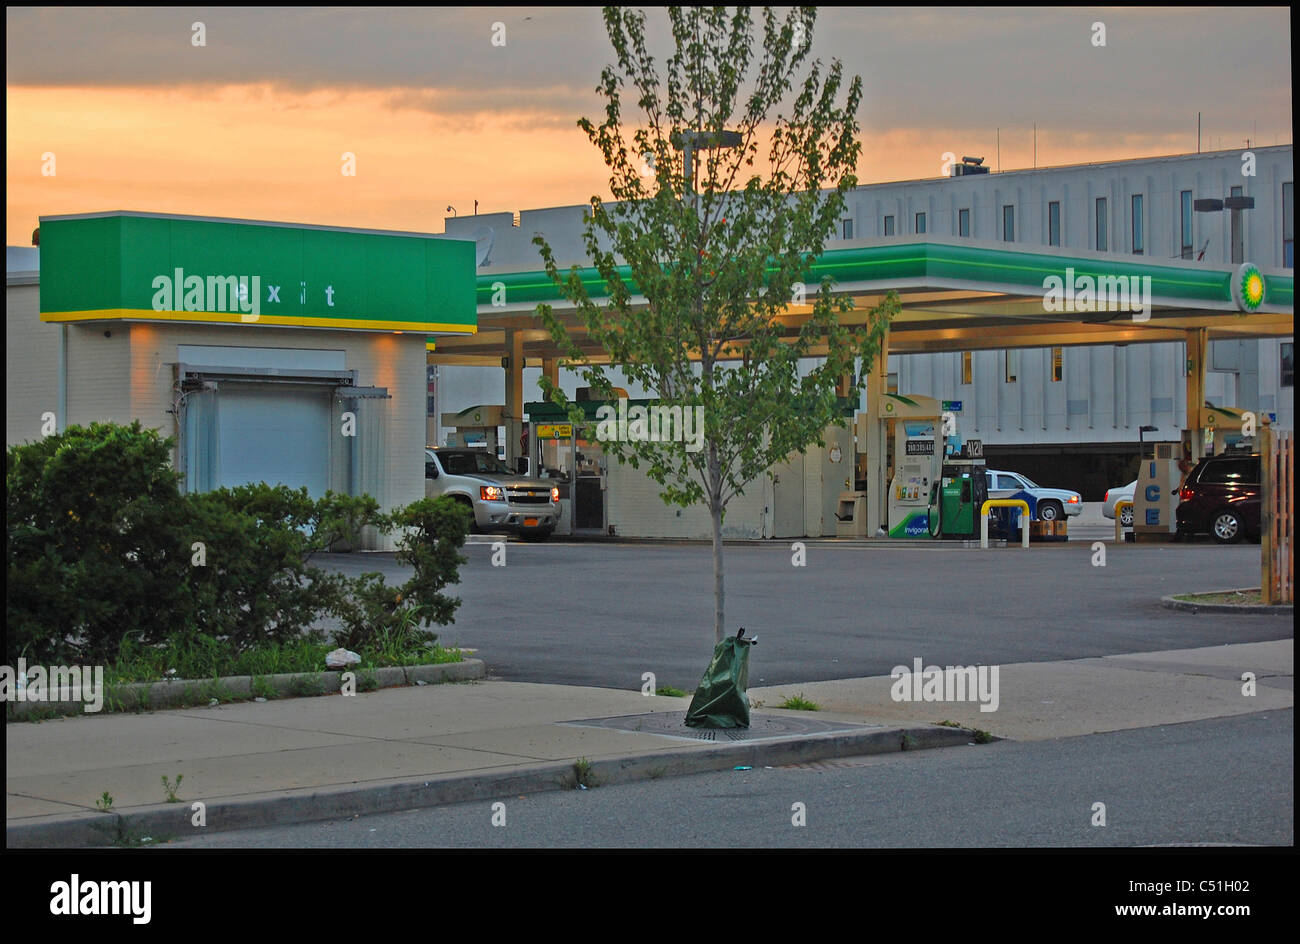 Green Gas Station in Jersey City - Stock Image